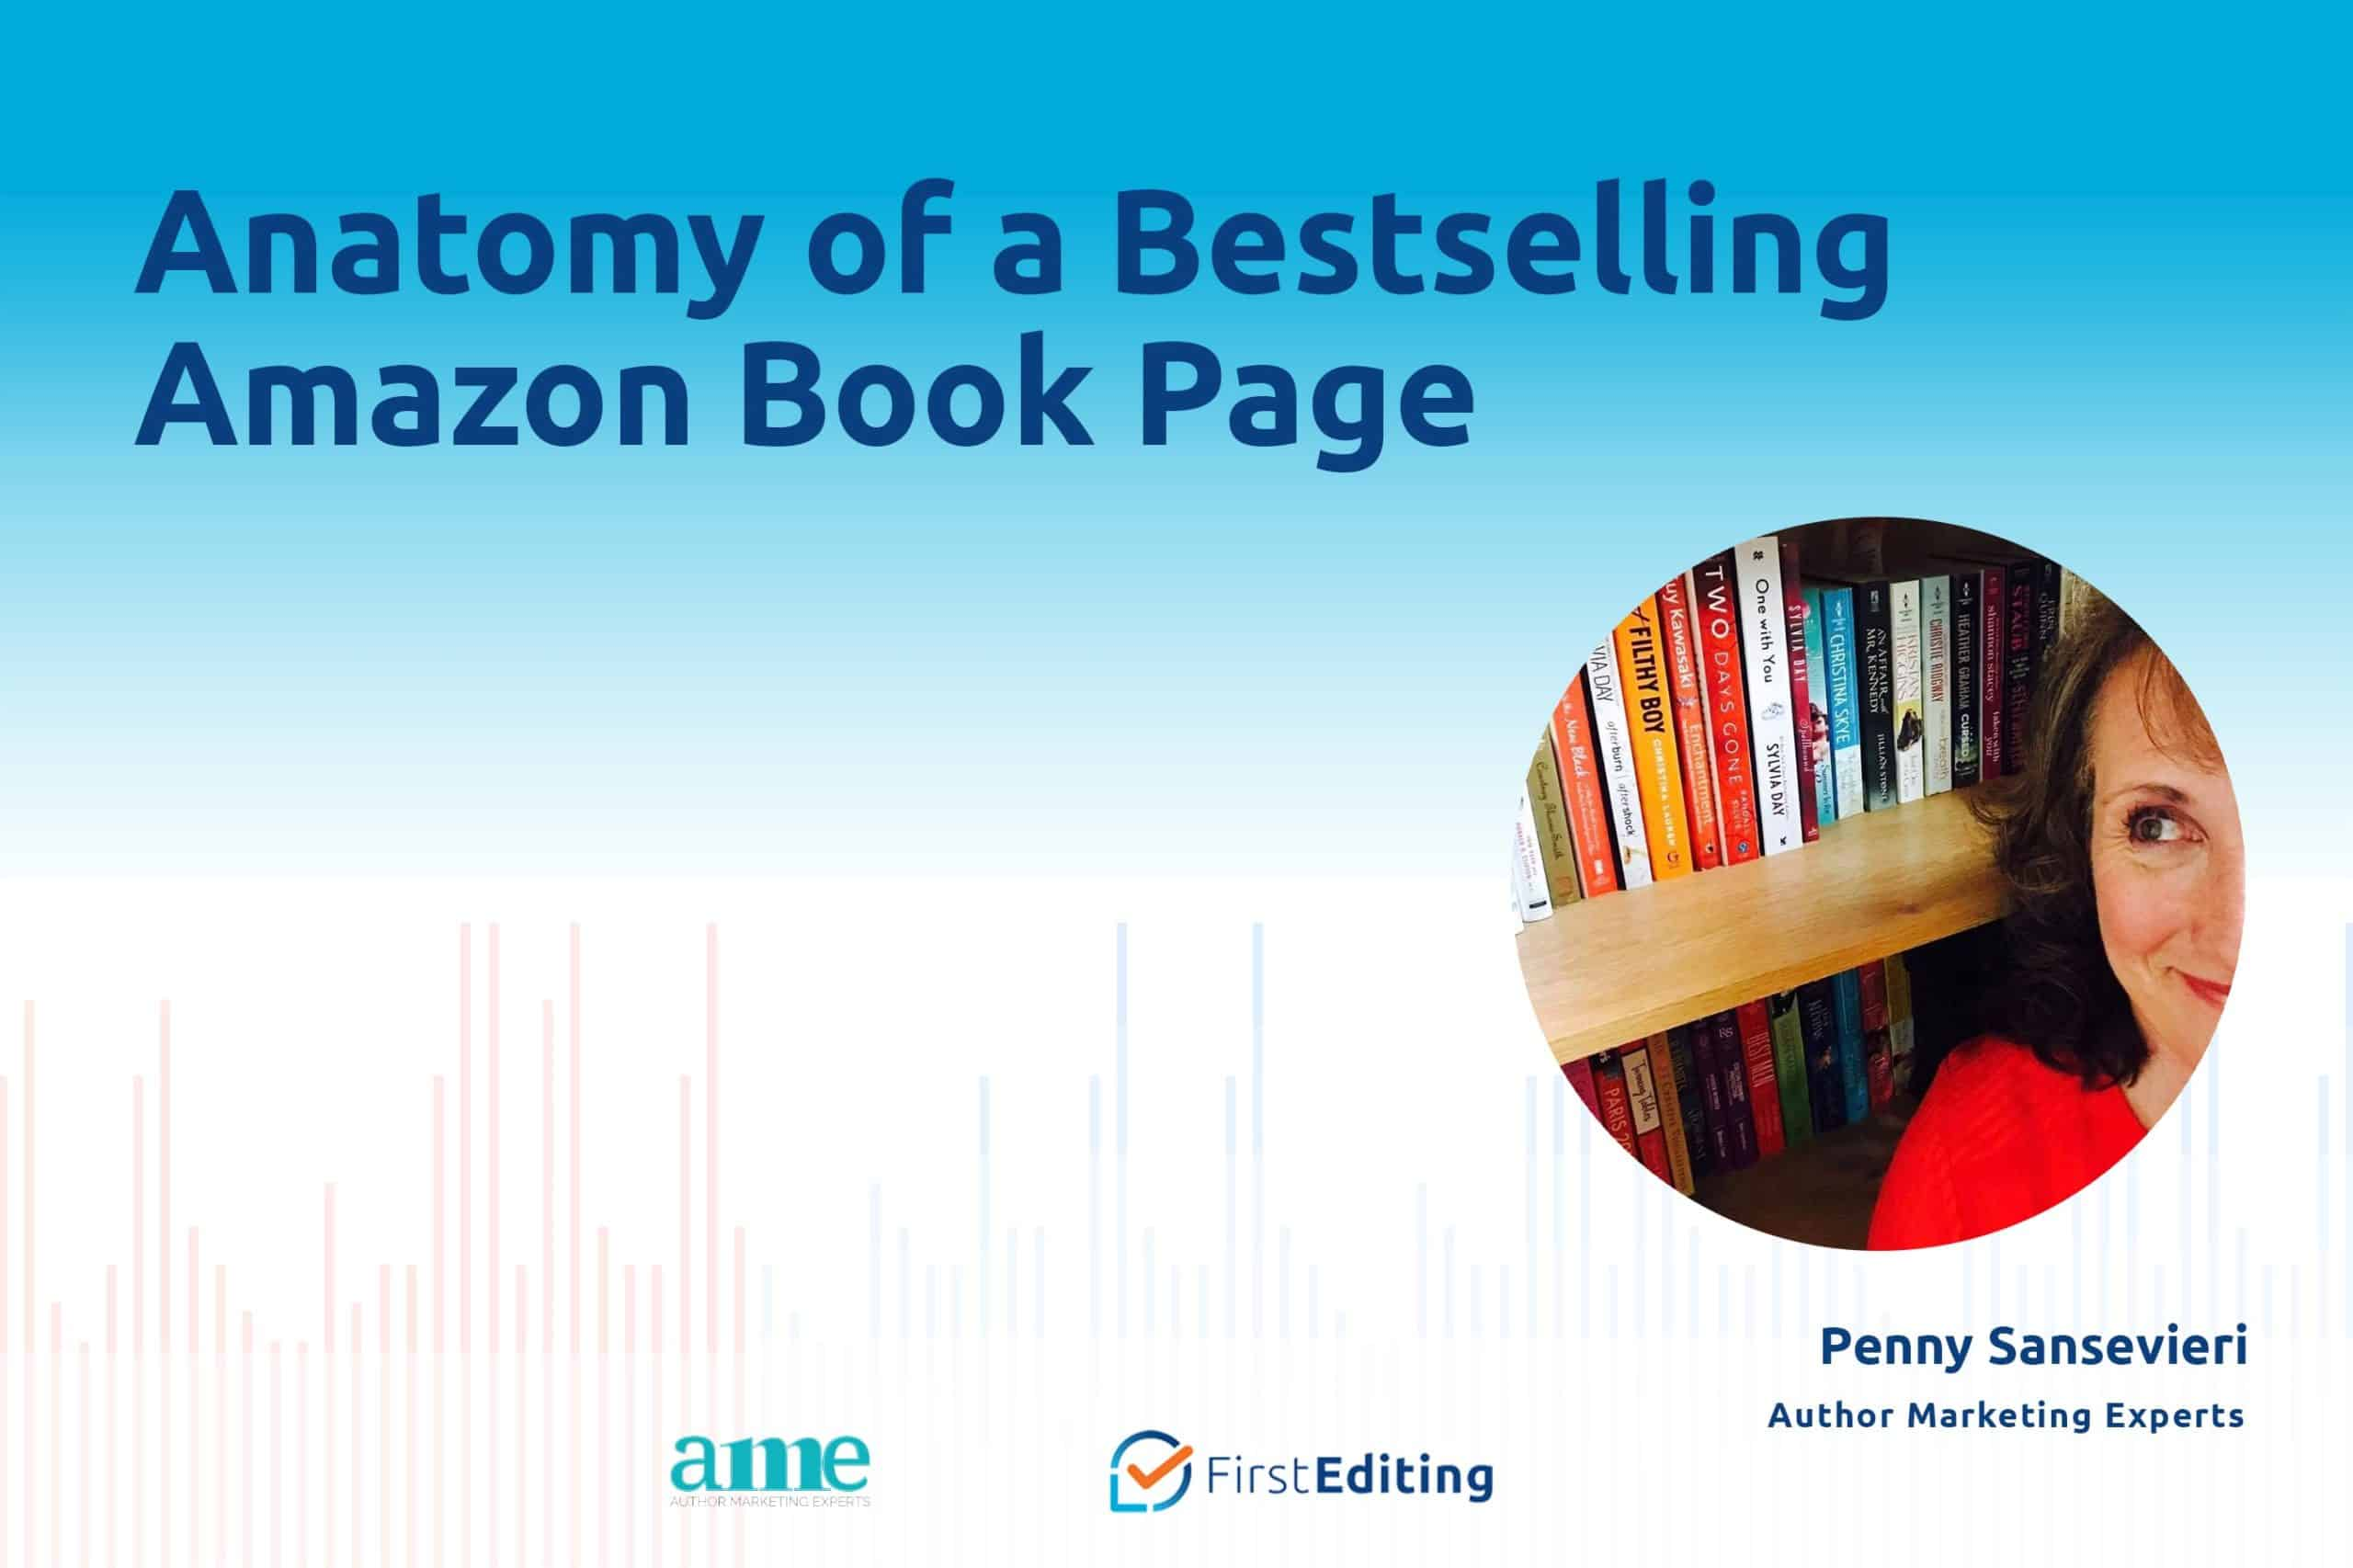 Anatomy of a Bestselling Amazon Book Page with Penny Sansevieri